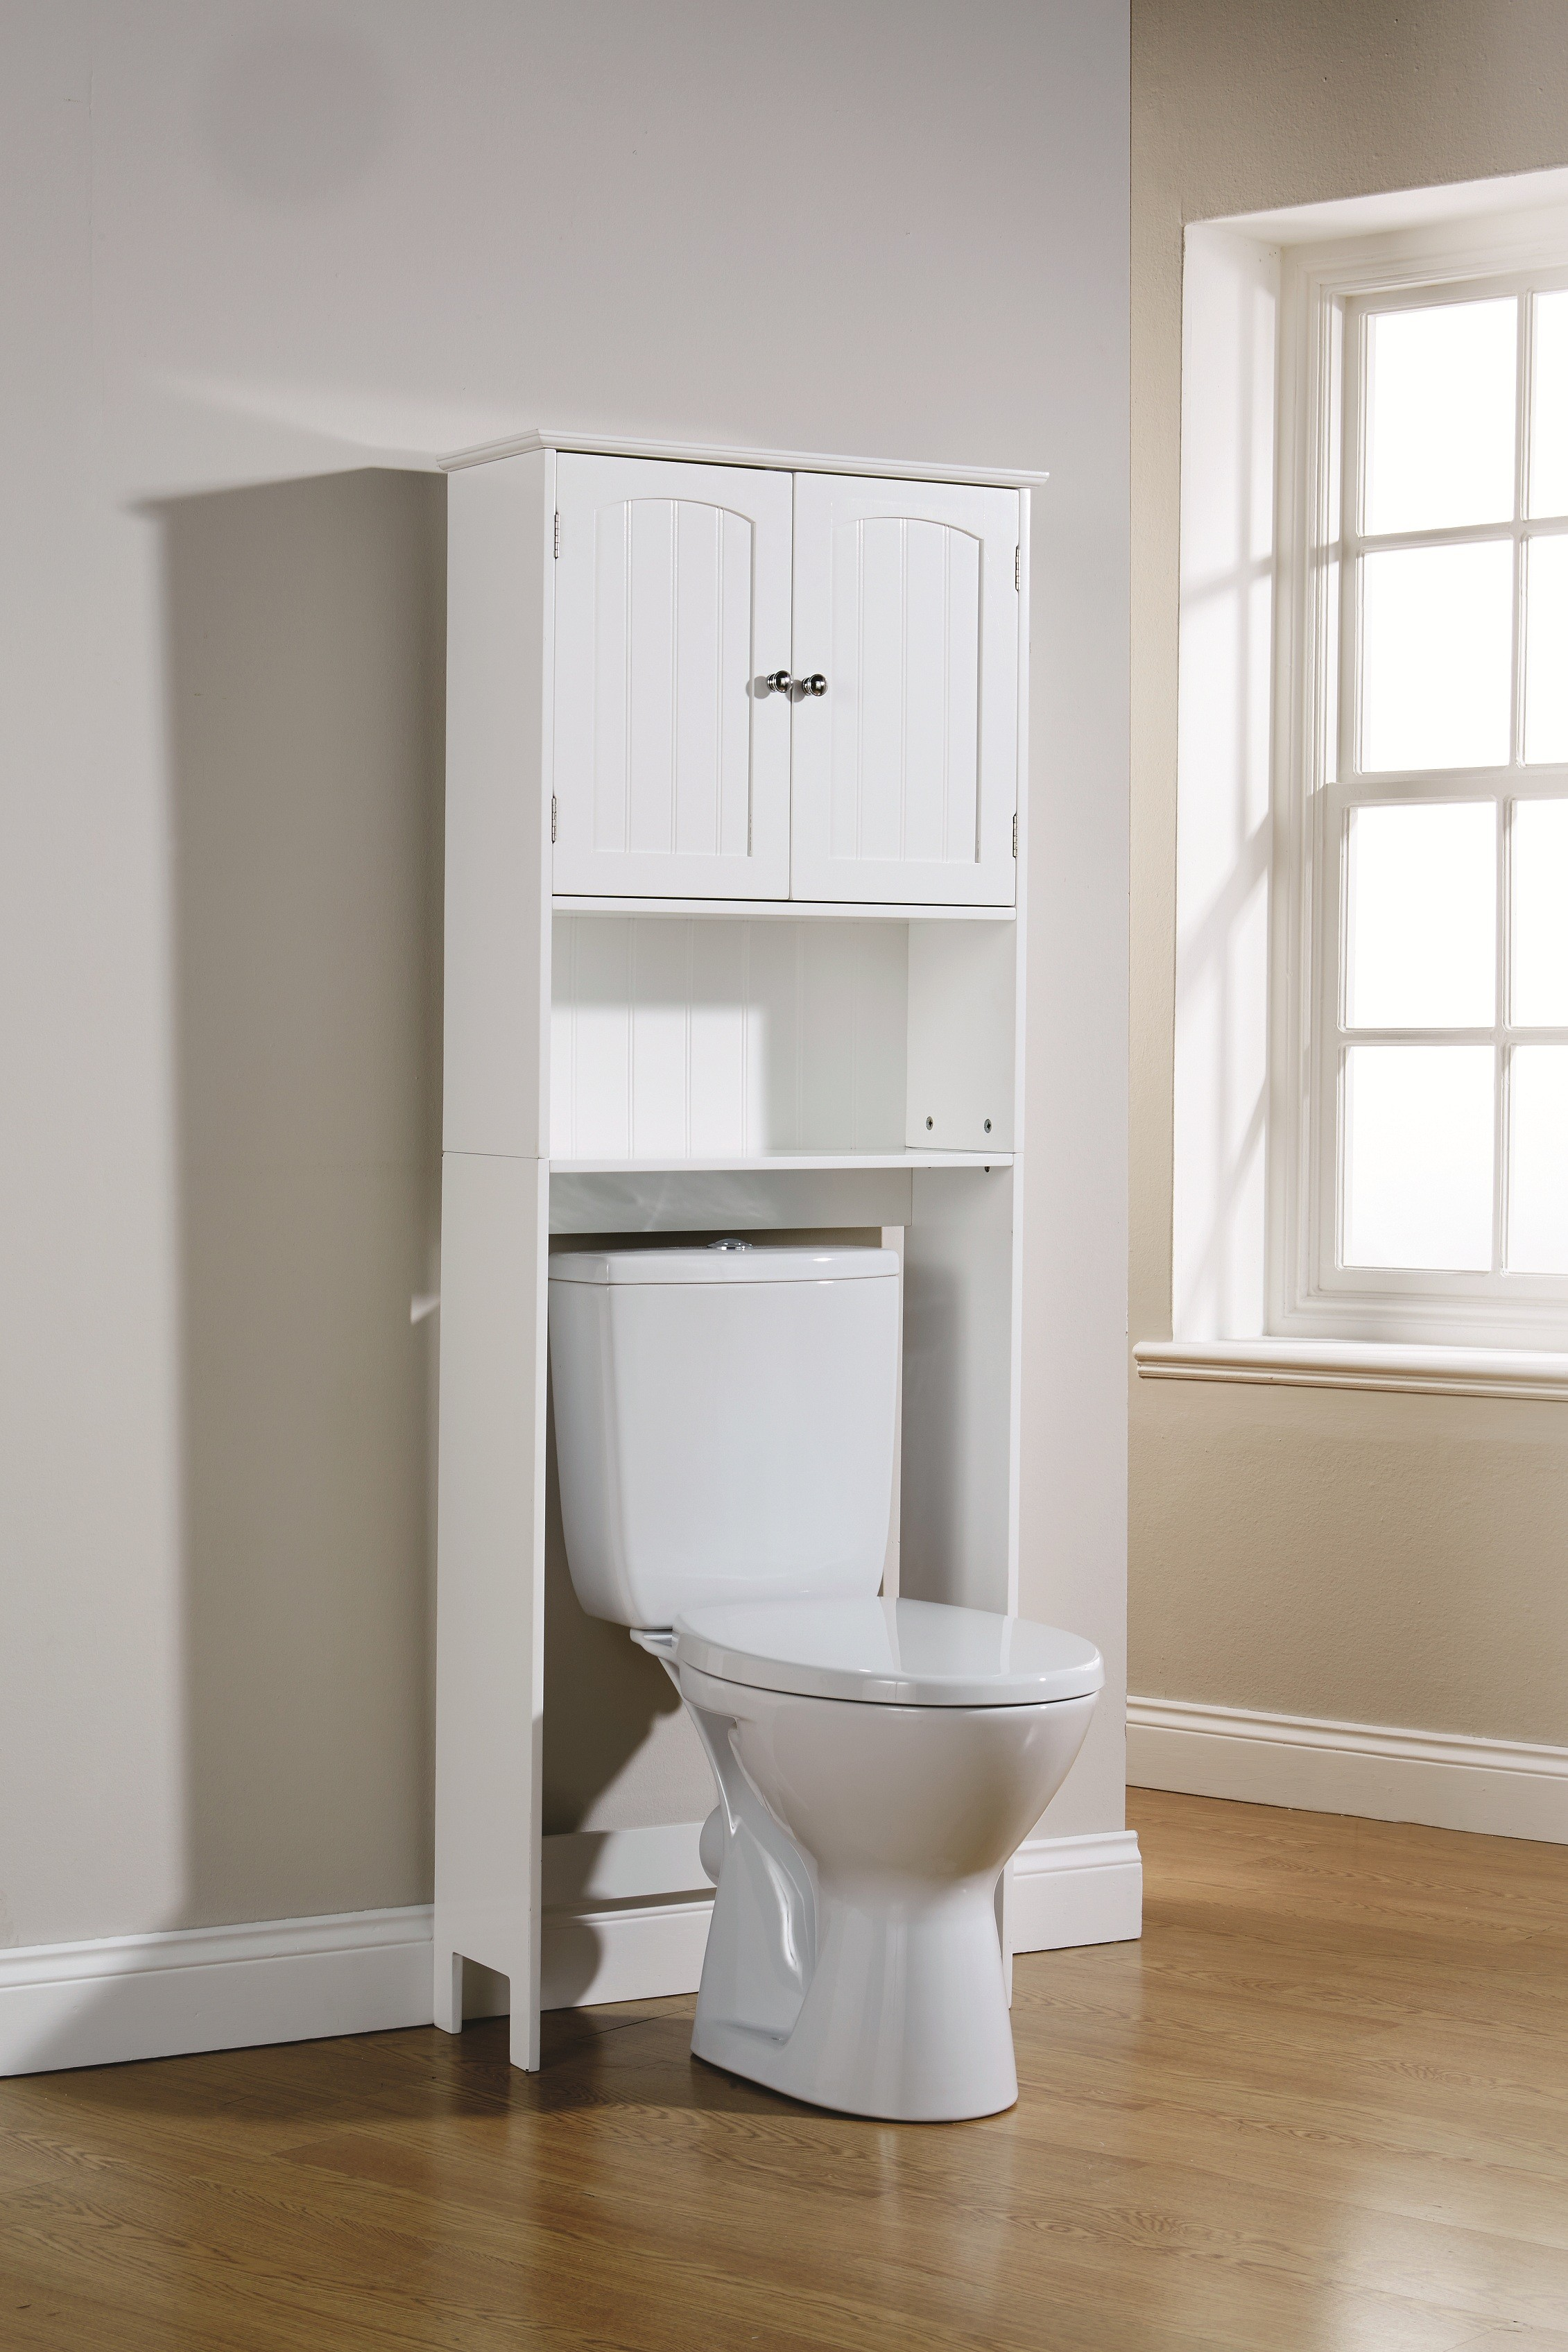 bathroom etageres bathroom etagere and plus black toilet space saver and plus over VZTPJBF